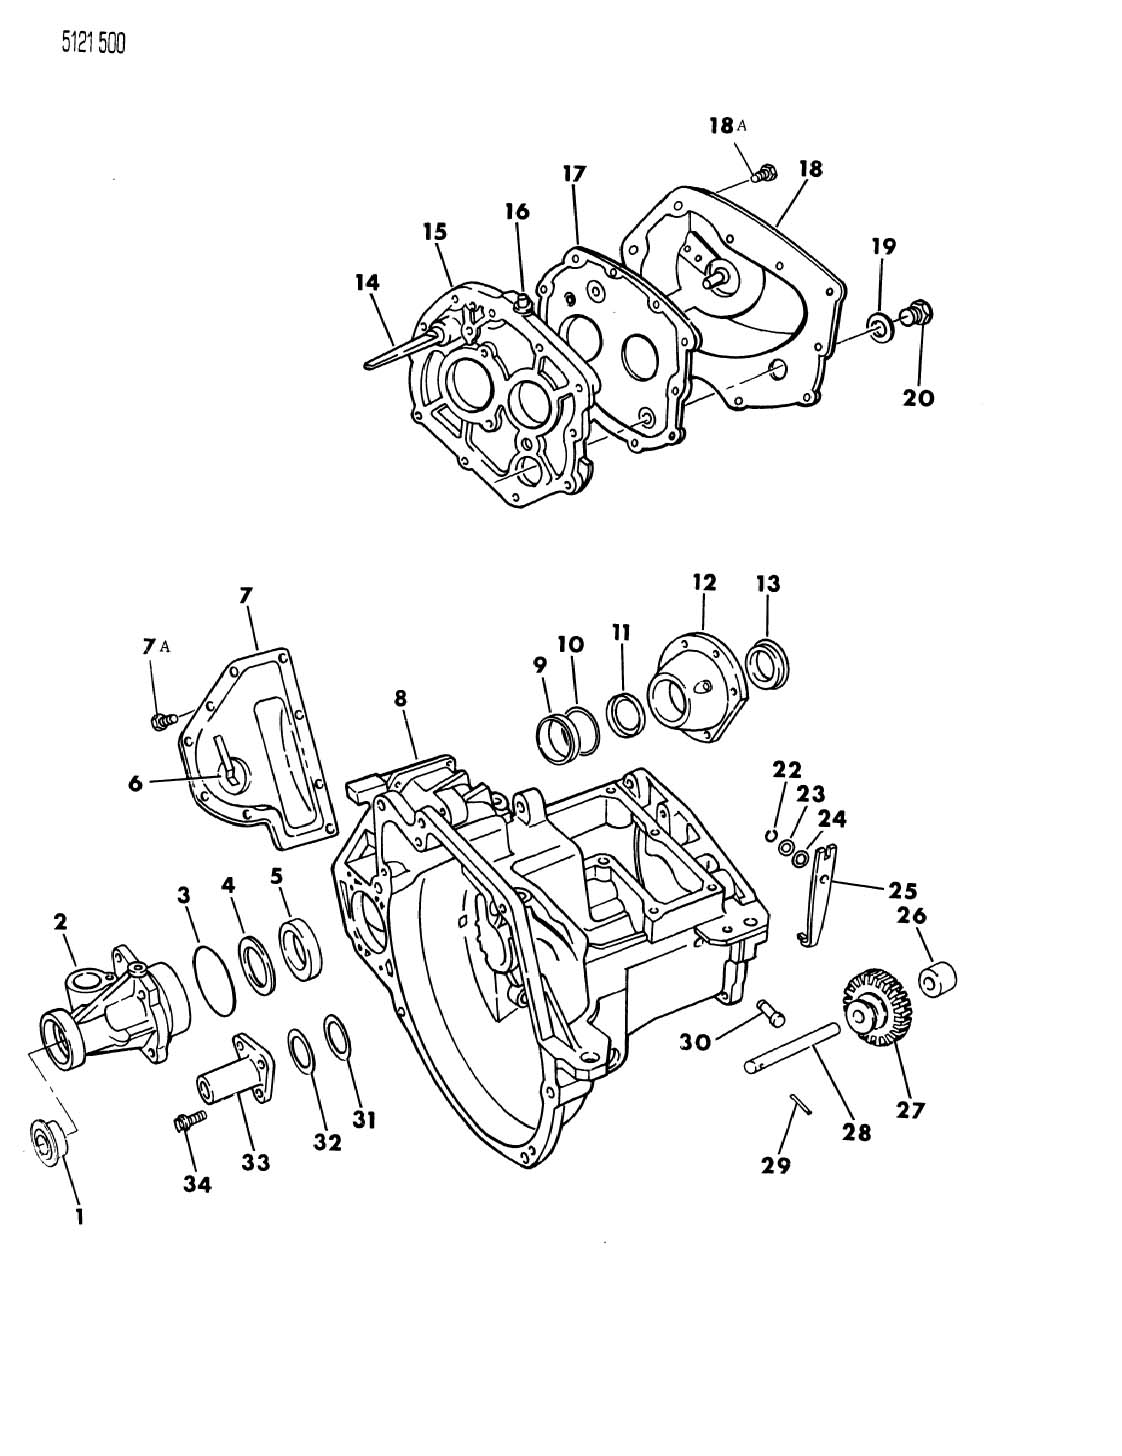 CASE, TRANSAXLE AND RELATED PARTS MANUAL TRANSAXLE, A525 5